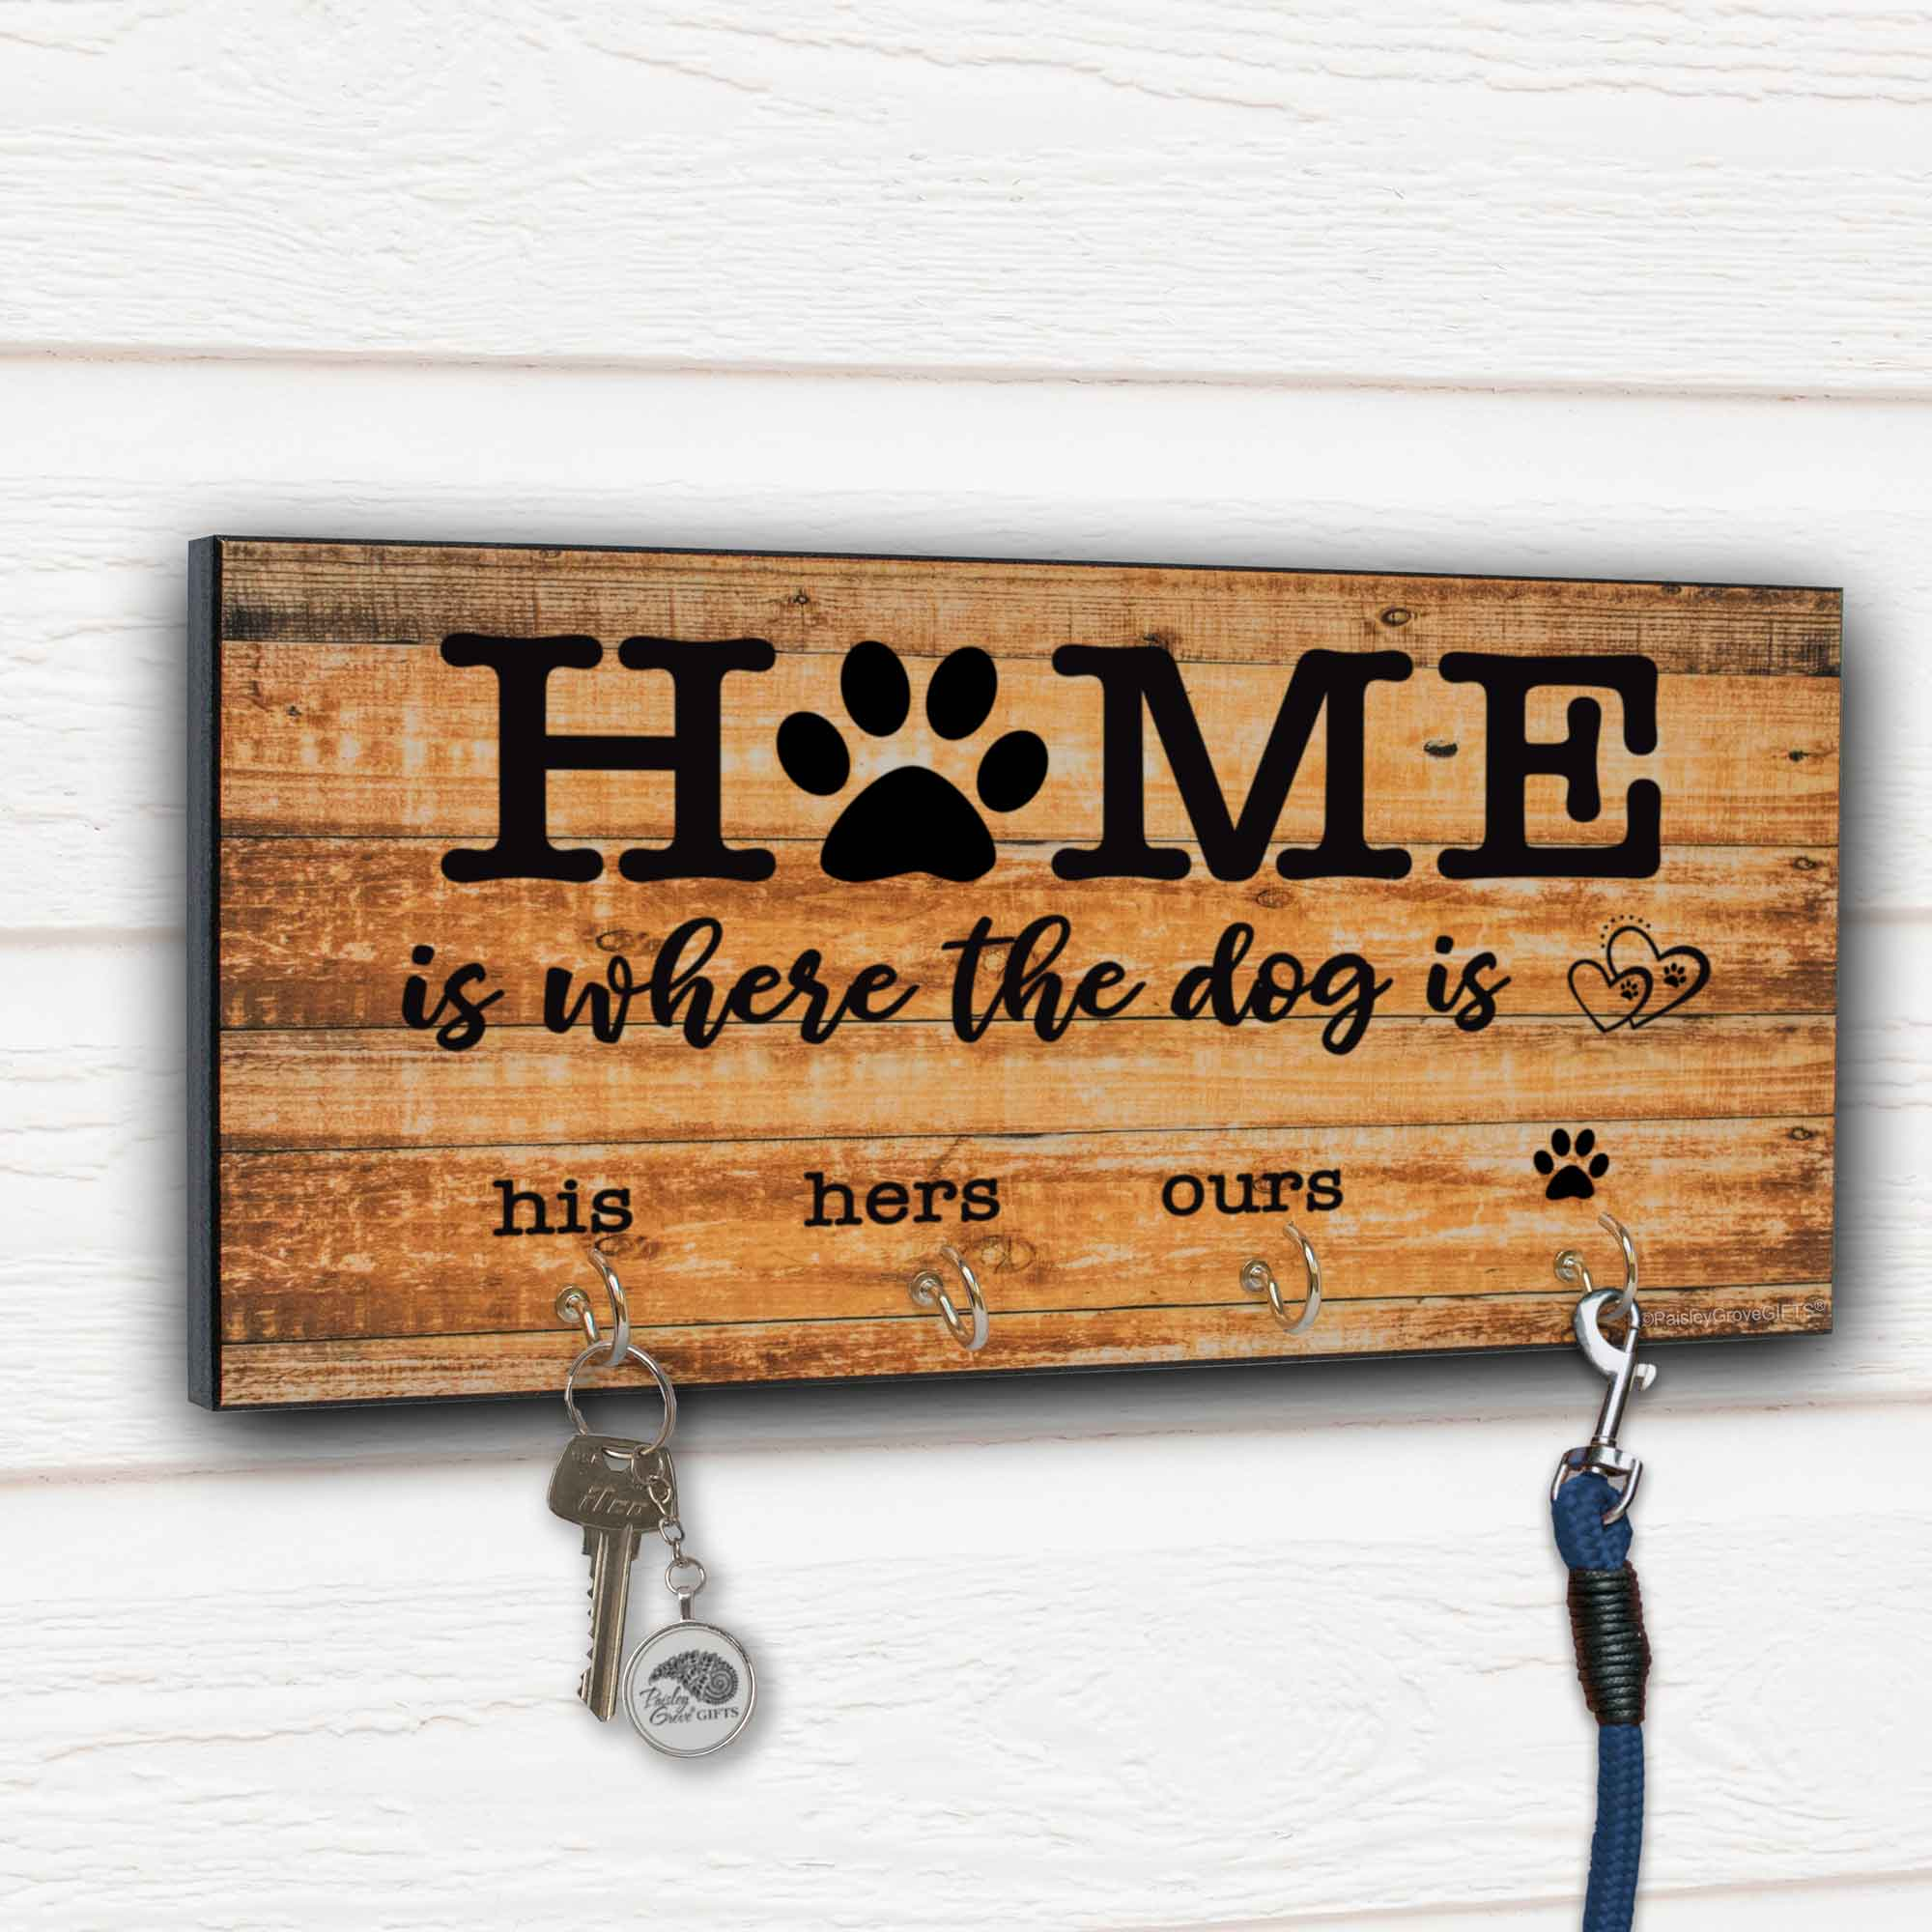 His Hers Ours Key Holder for Wall Leash Organizer - S307b